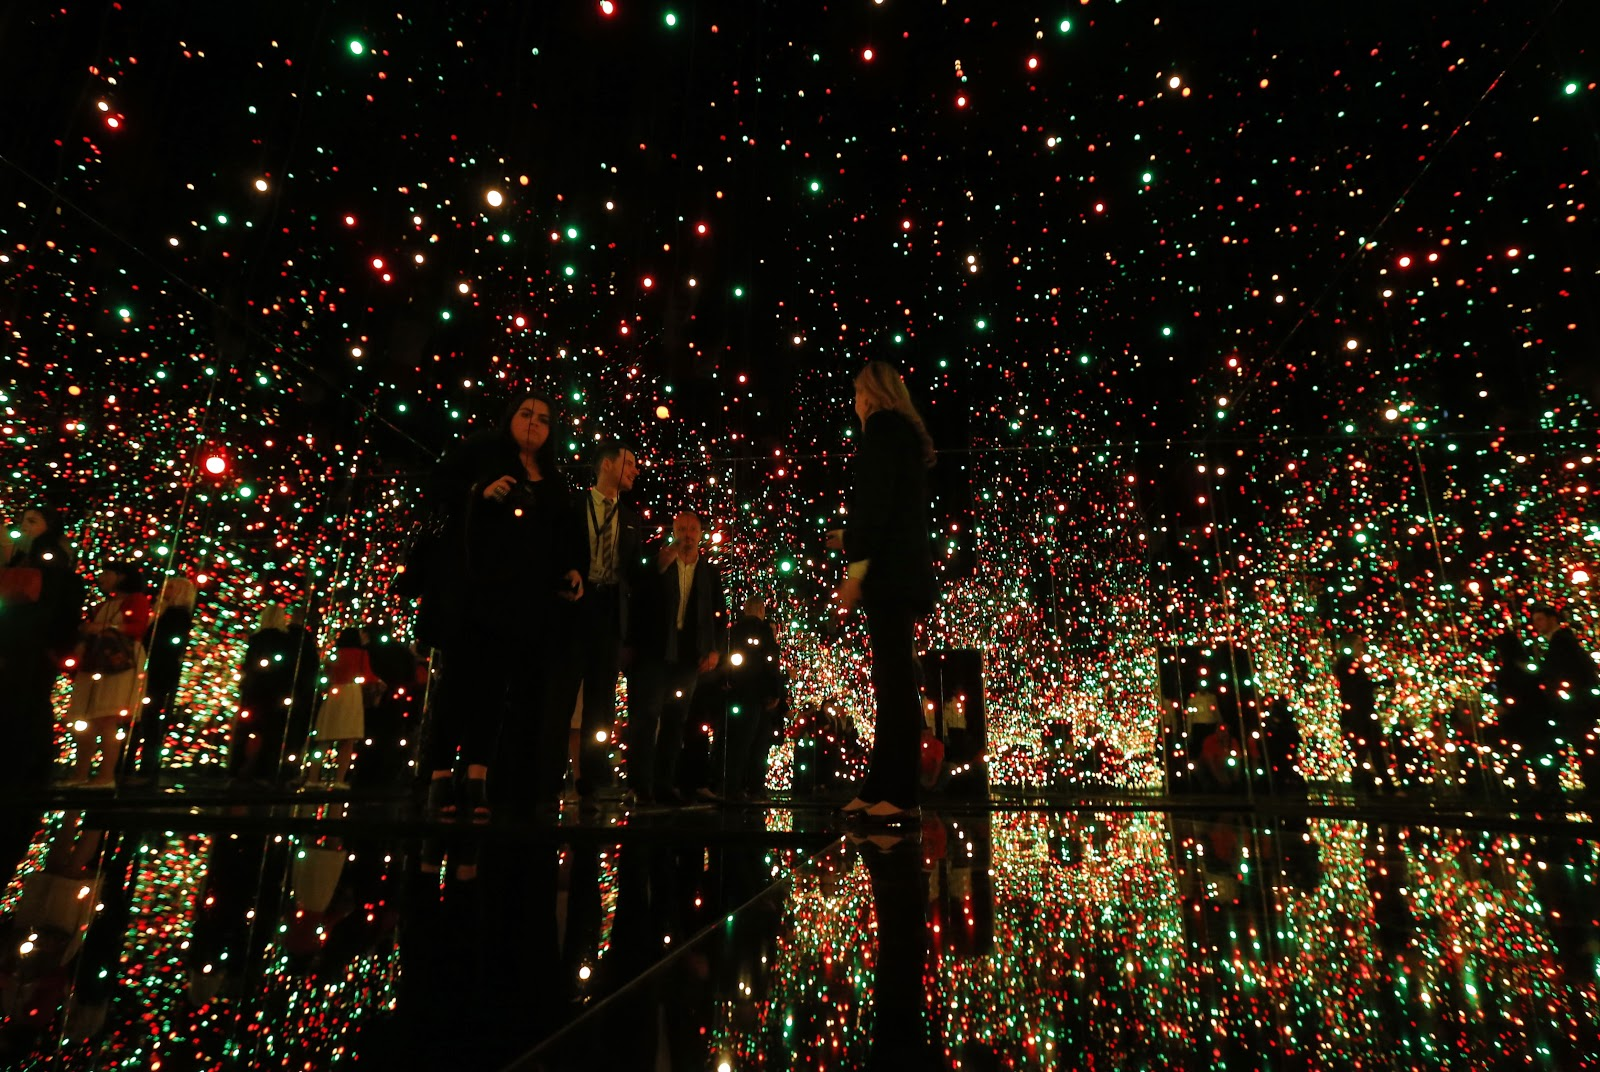 In Pictures the 'Infinity Mirrored Room' by Yayoi Kusama at David Zwirner Gallery